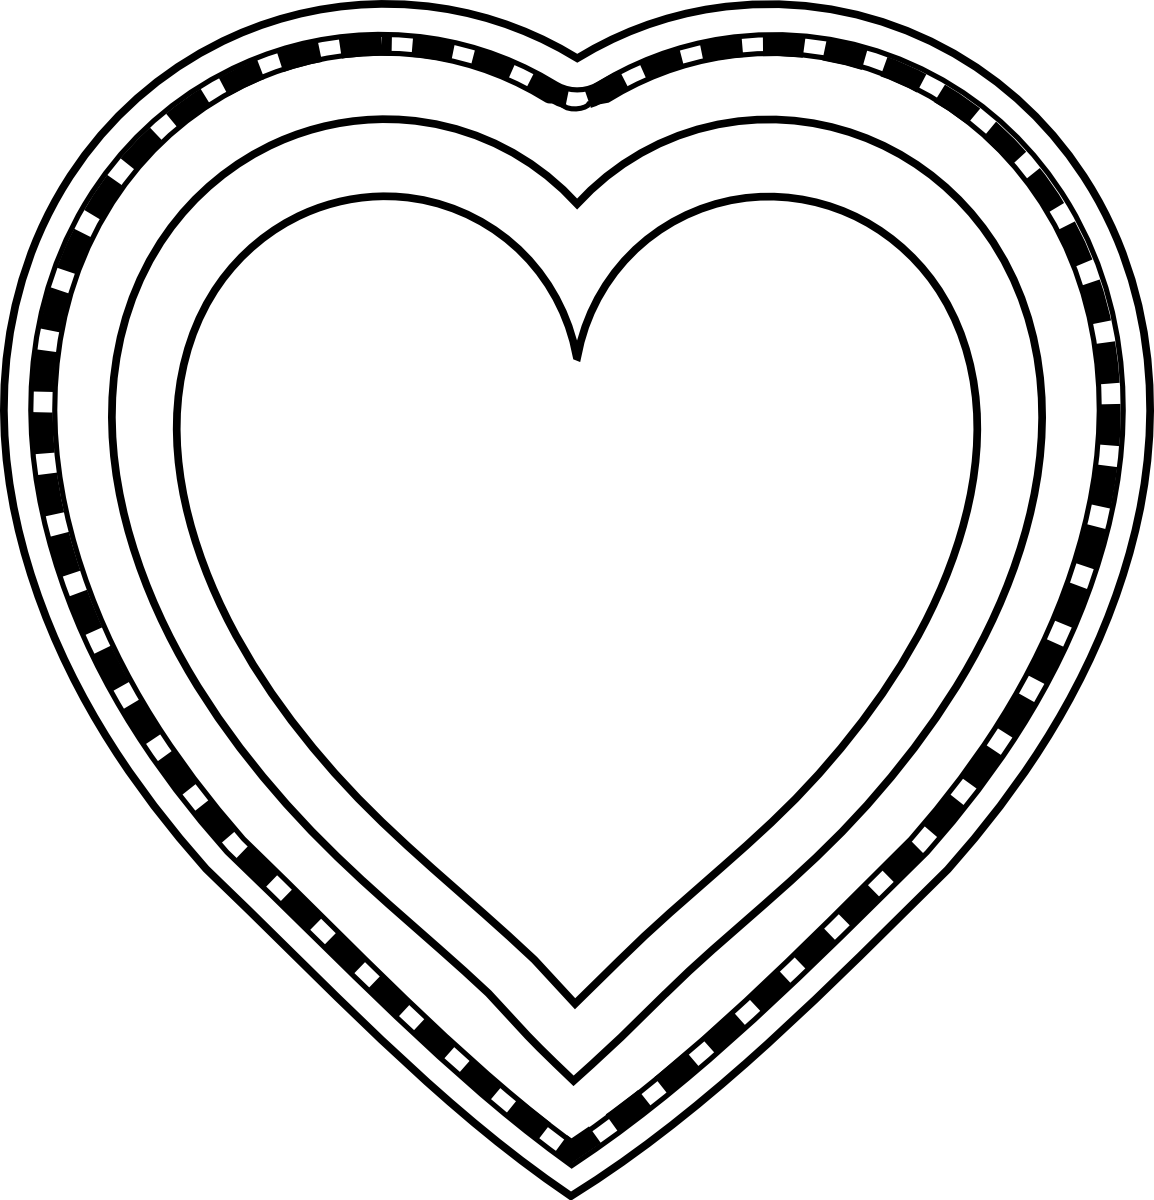 Decorated Heart Drawings Decorative Heart Free Digital